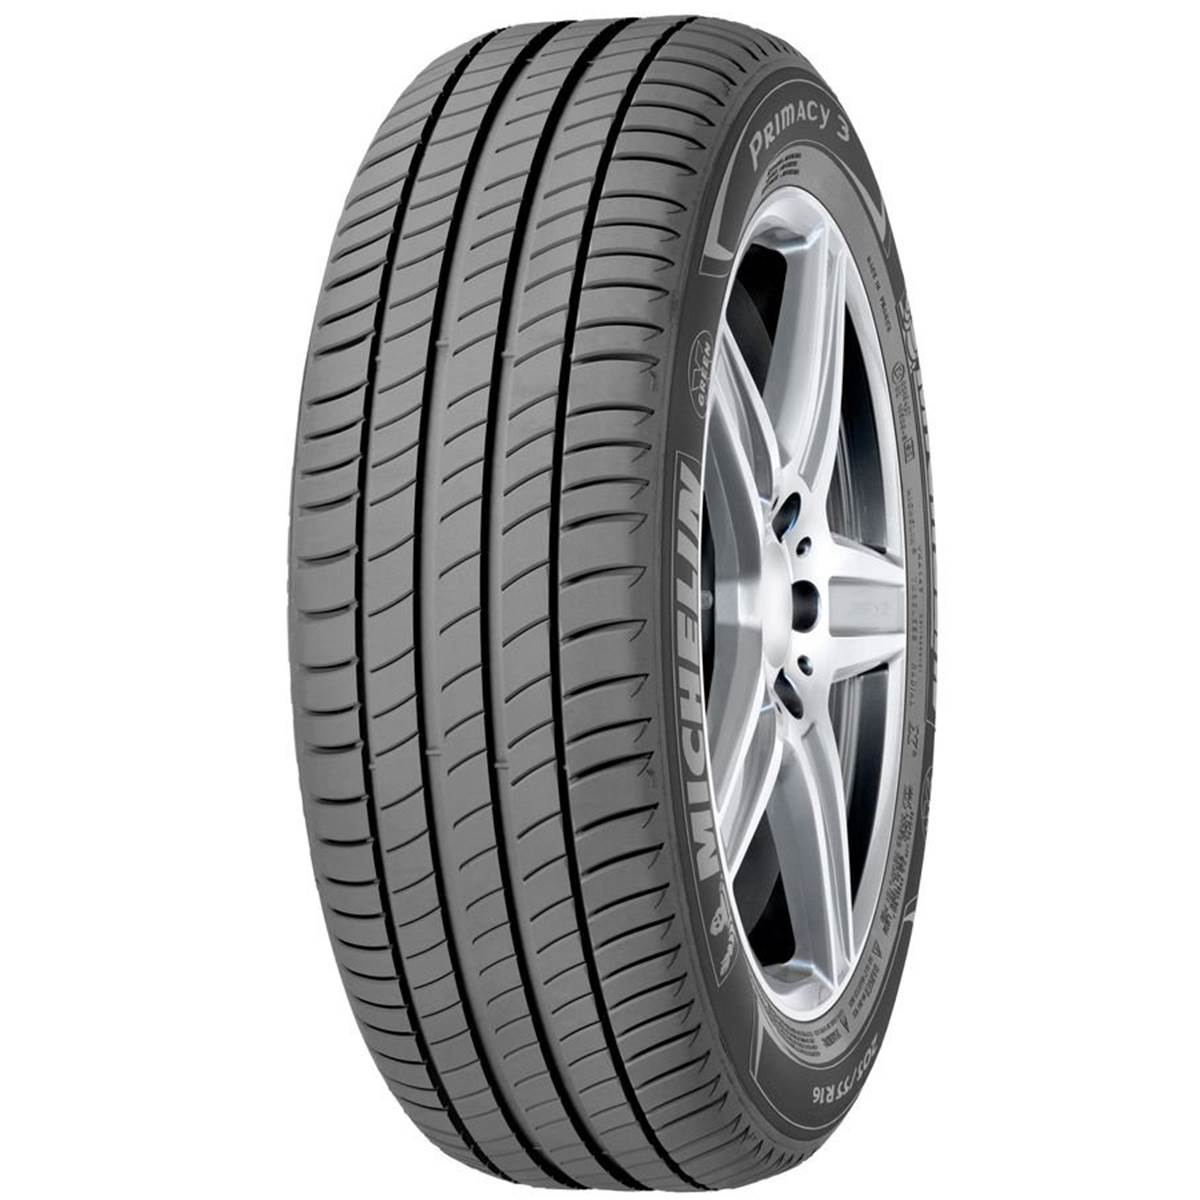 Pneu Michelin 225/50R17 94V Primacy 3